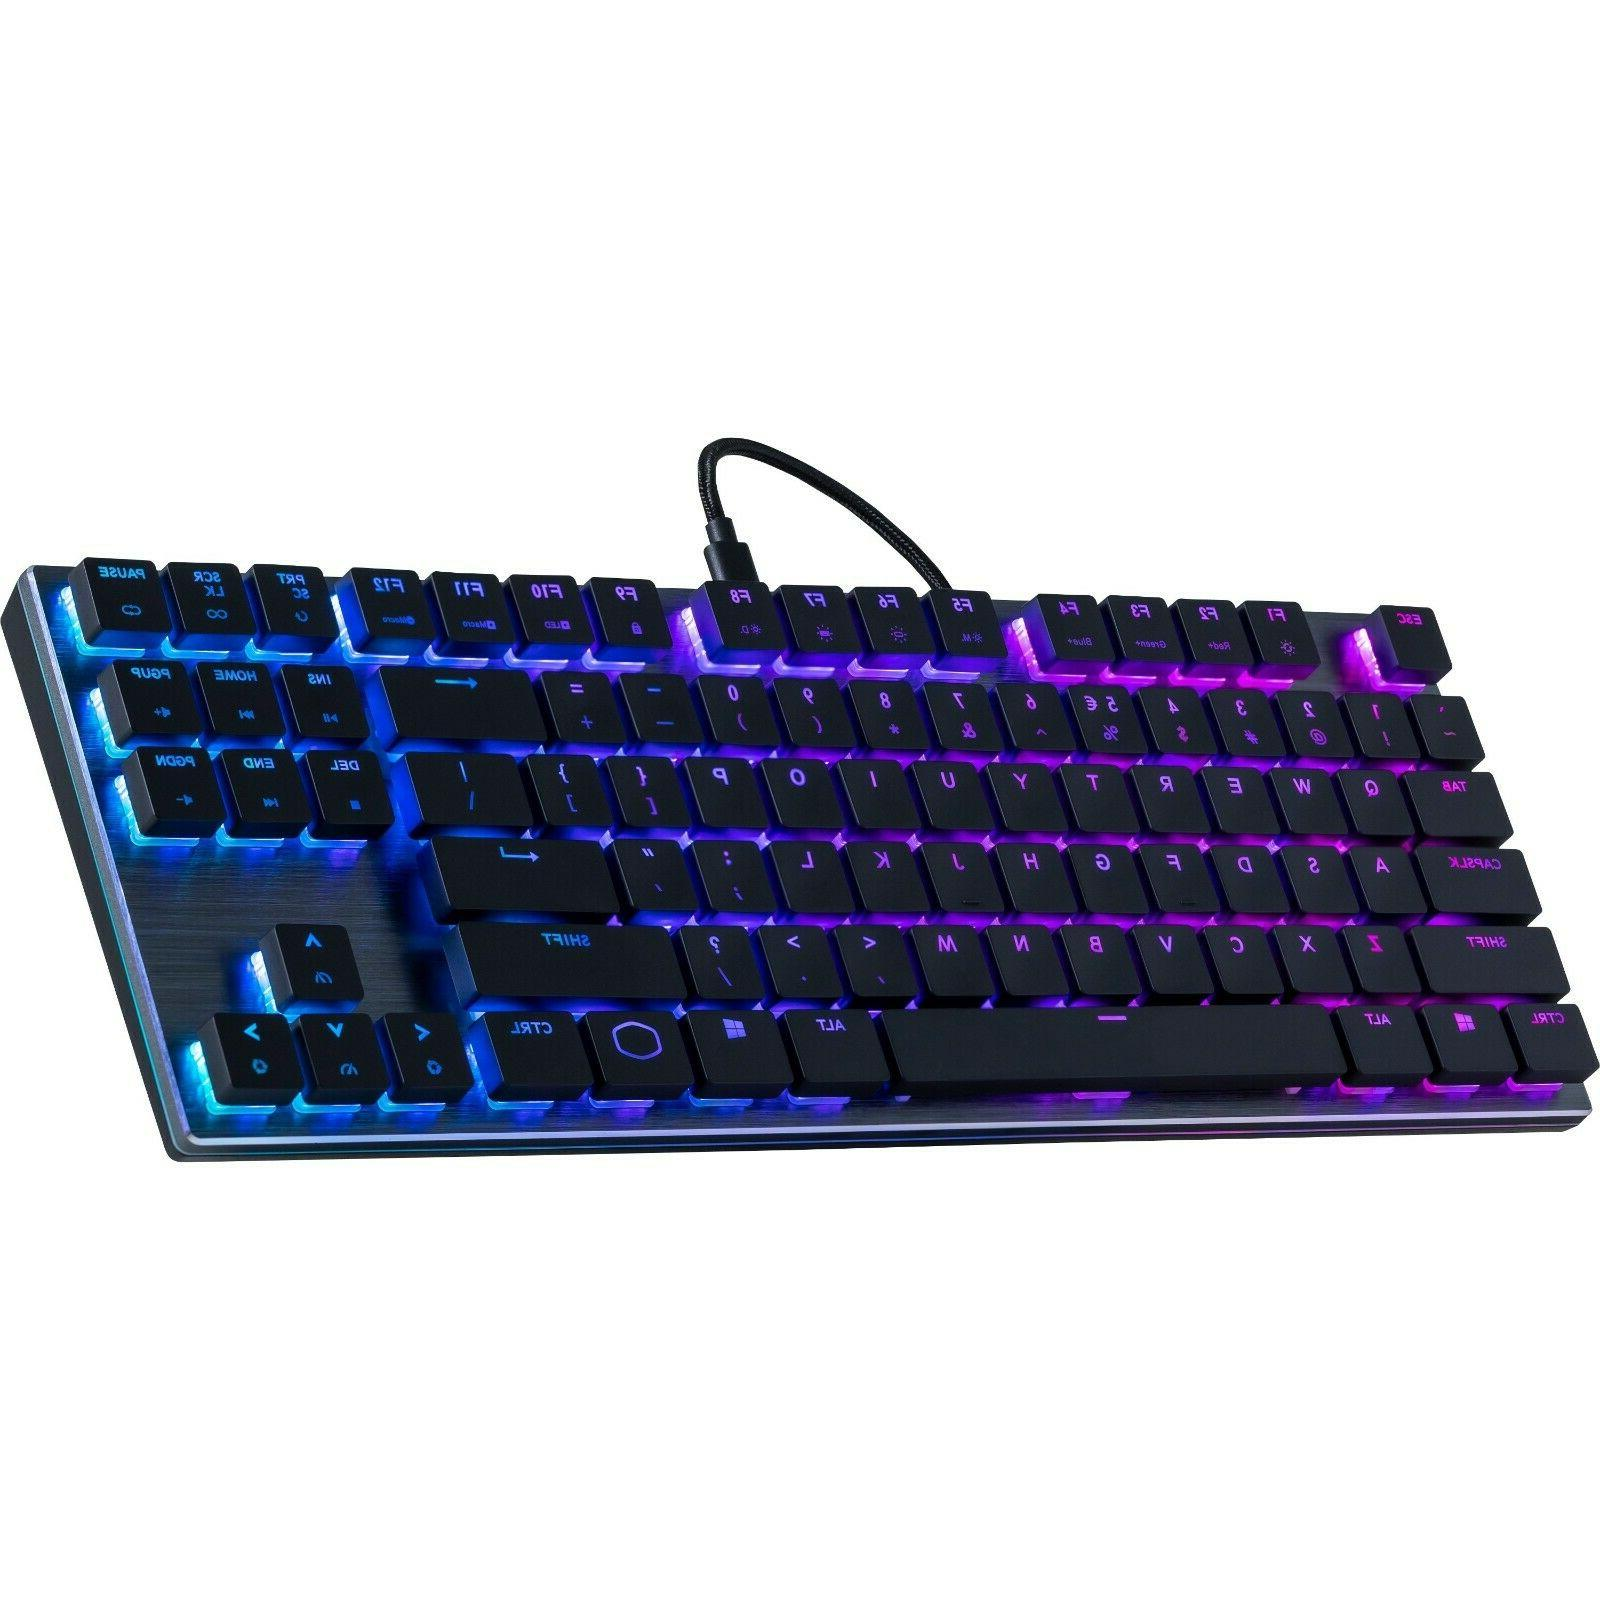 Cooler Master Black Keyboard with Cherry MX